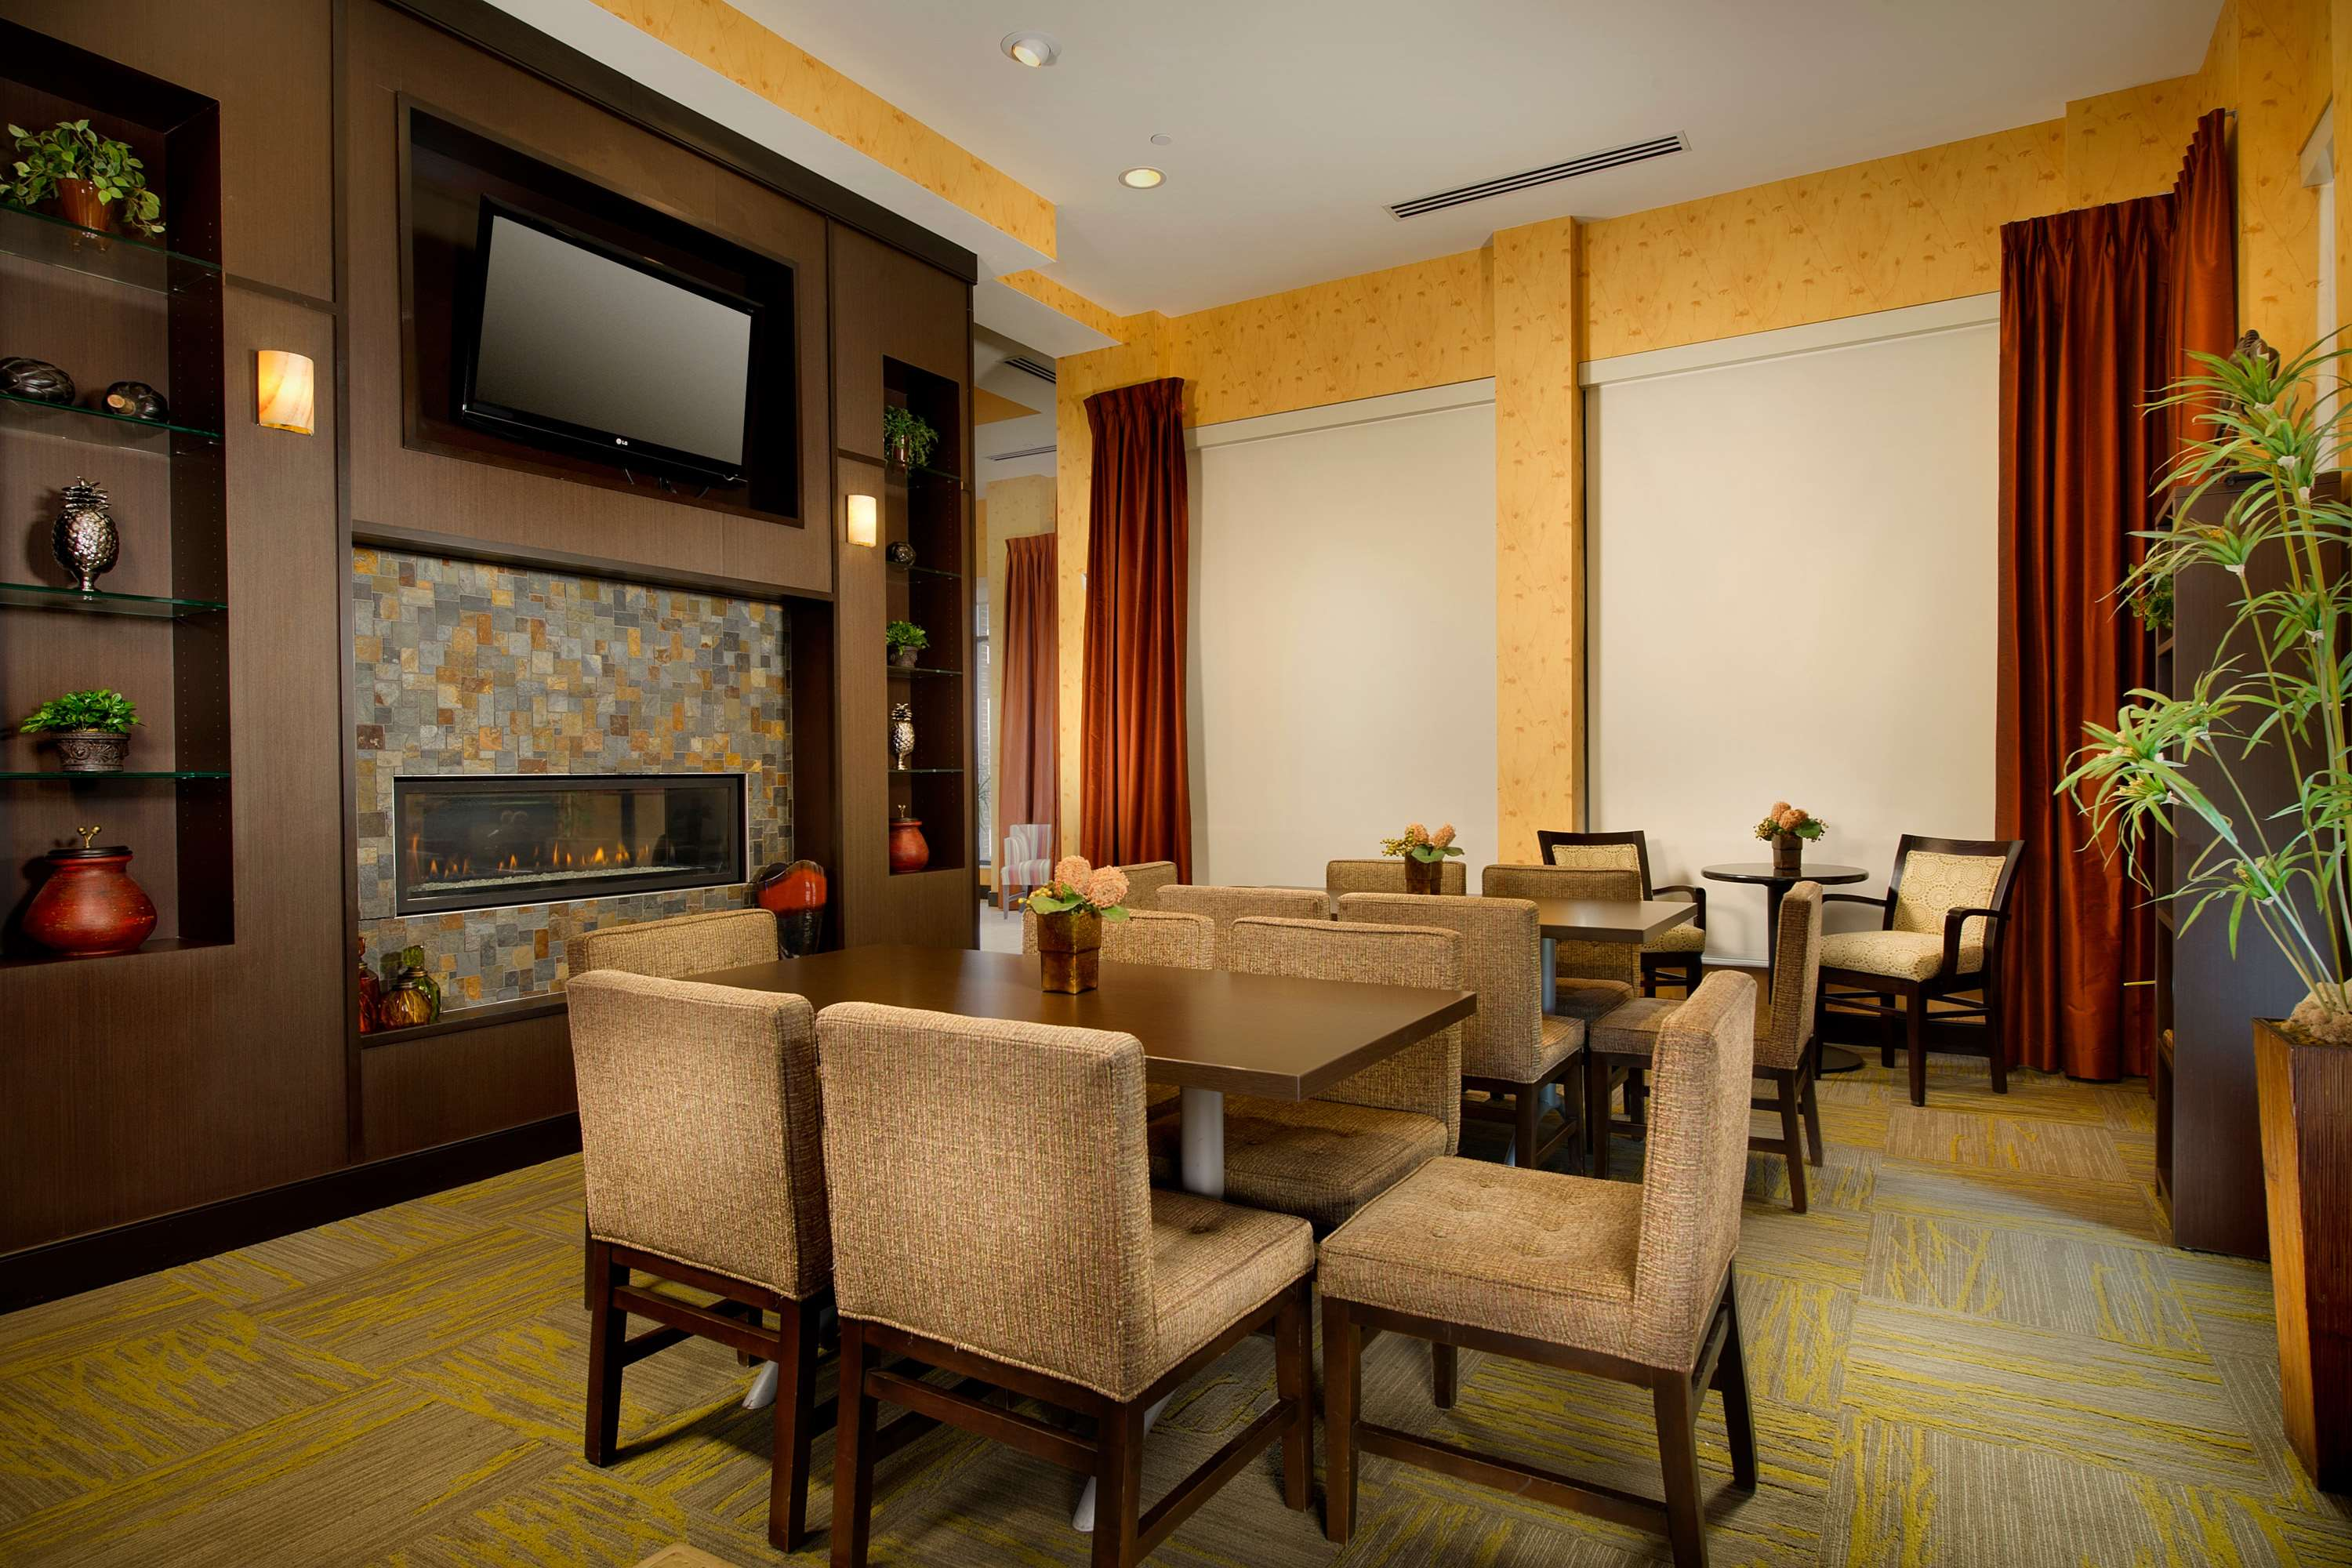 Hotels business in Indianapolis, IN, United States